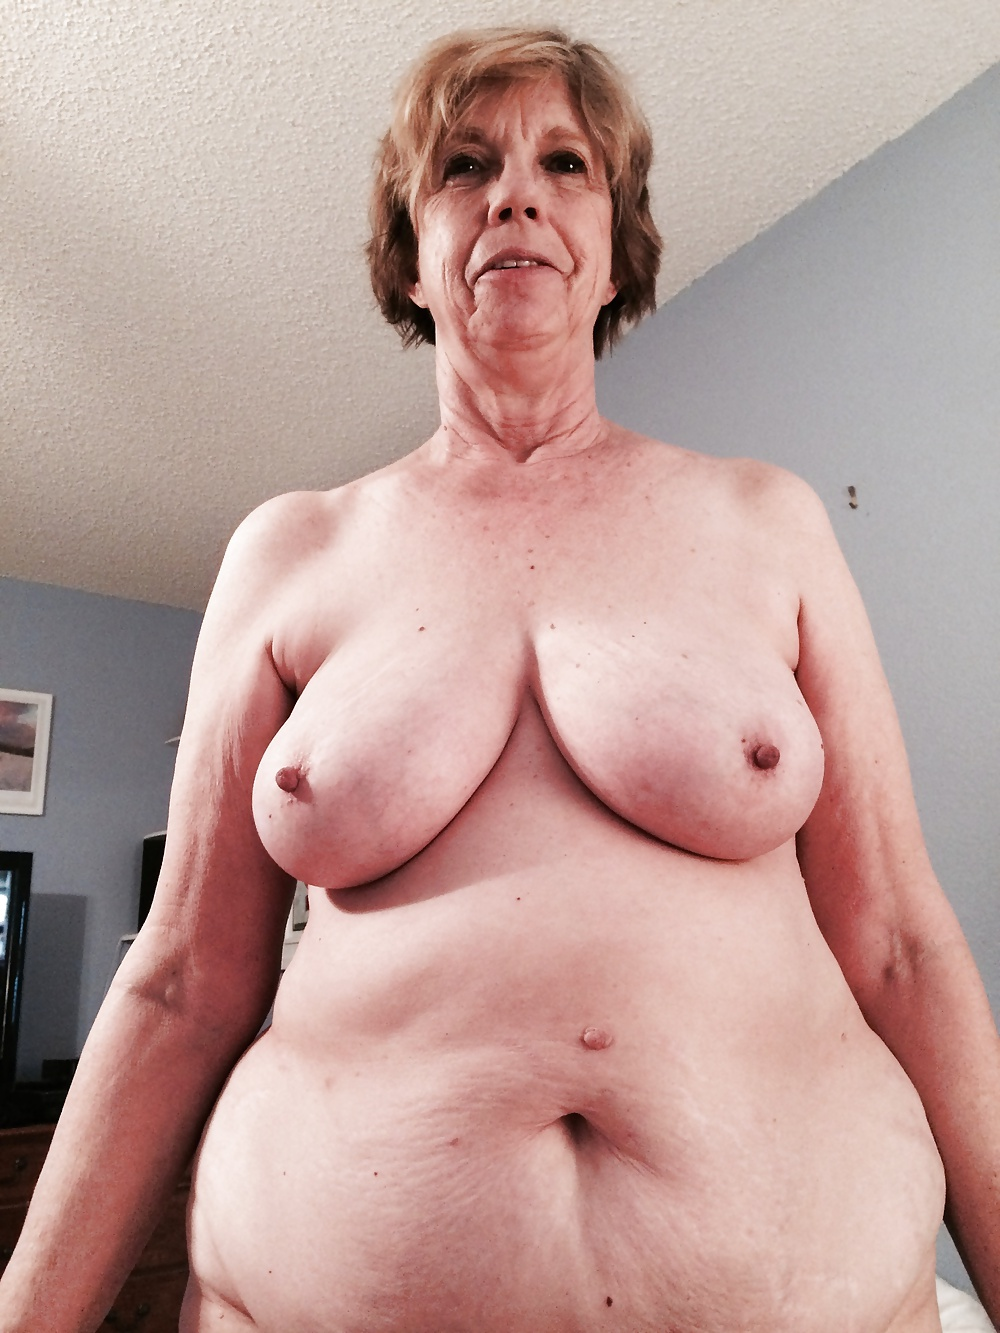 Lady naked senior